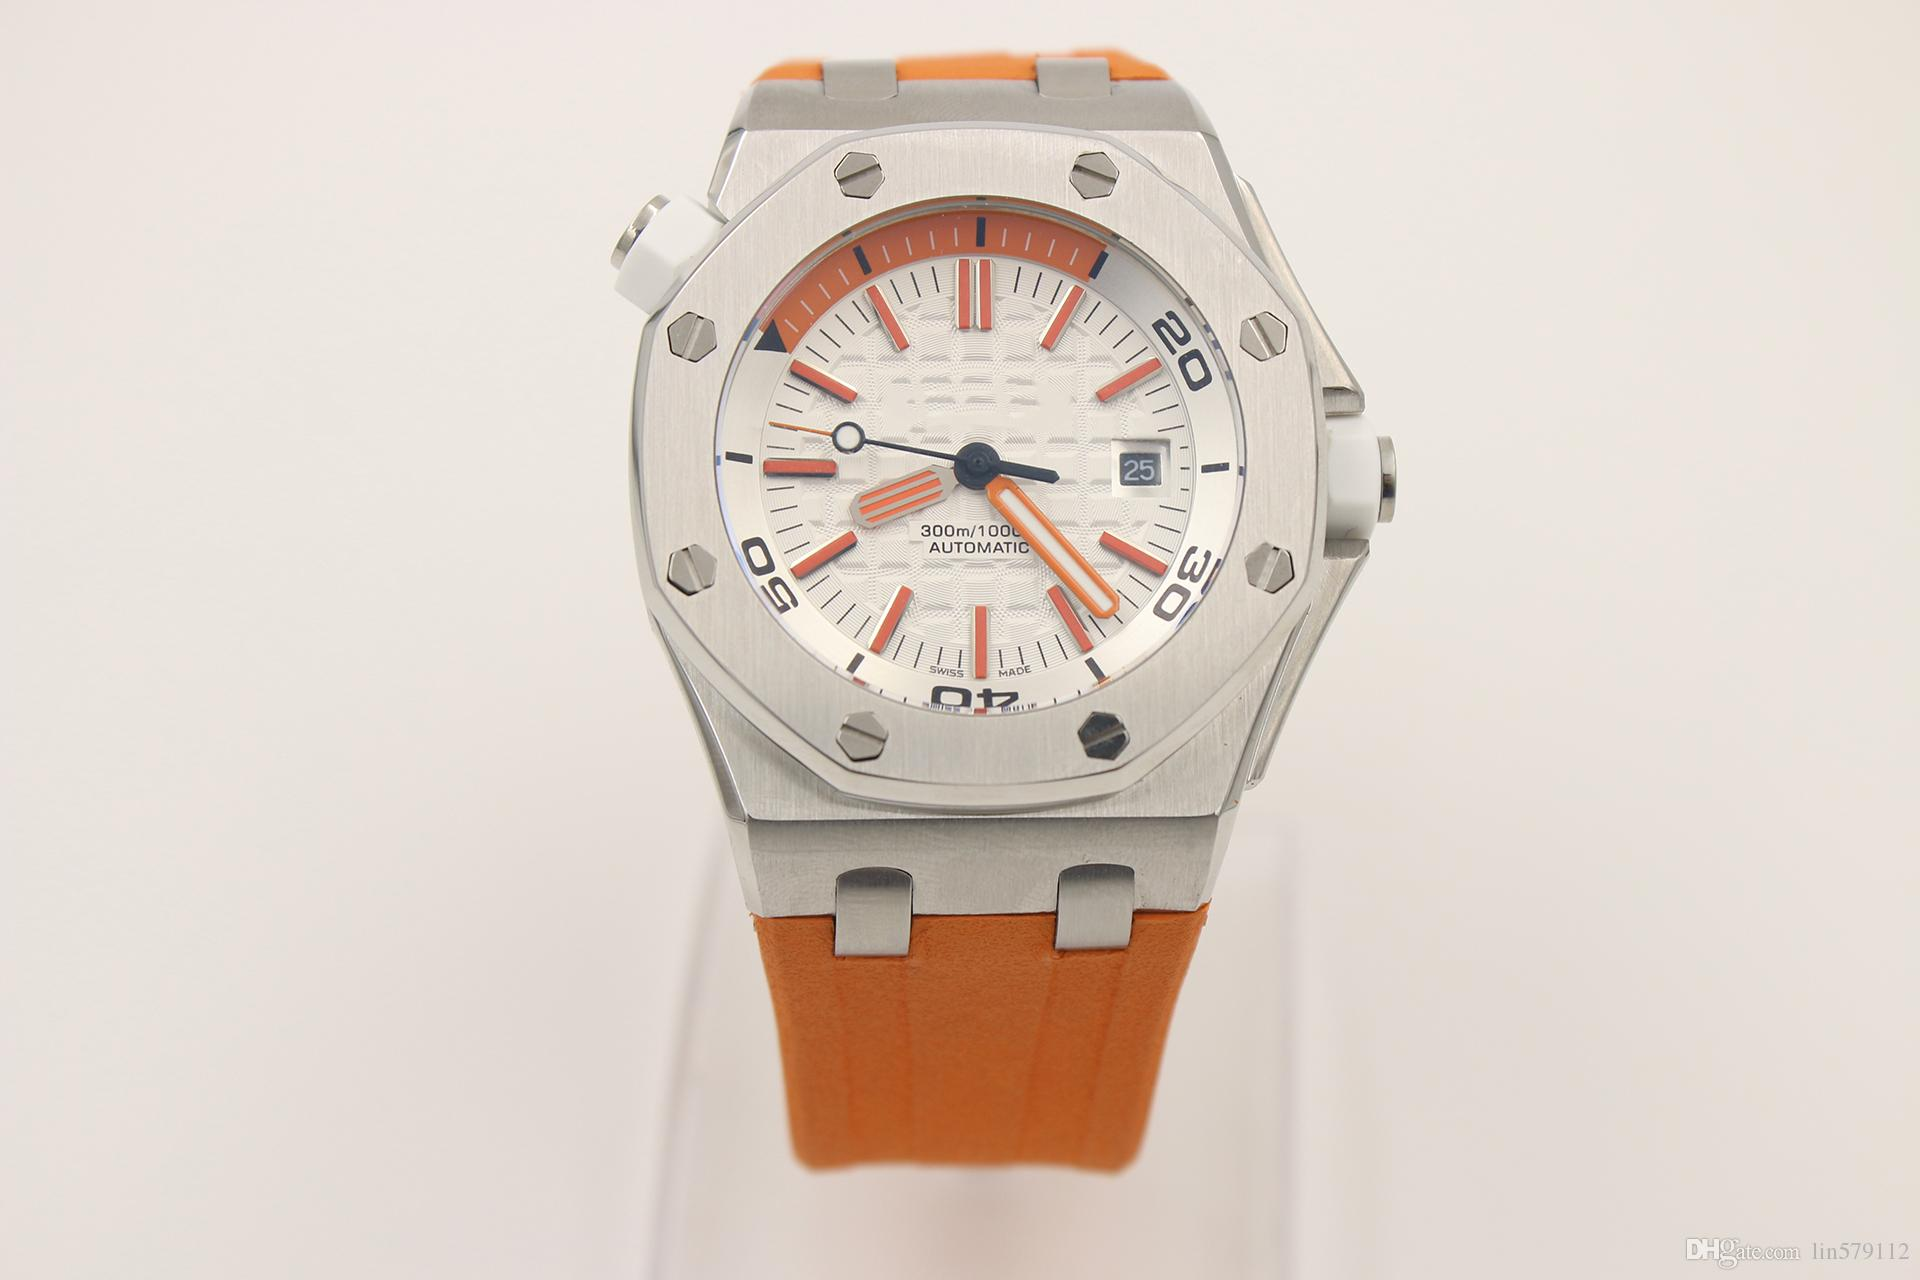 0efdd5907d38 New 15710ST Men Diving High Quality AAAA Automatic Tape Sea Sports Watch  Free Delivery Diving Maestro II Gmt Online with  125.72 Piece on  Lin579112 s Store ...